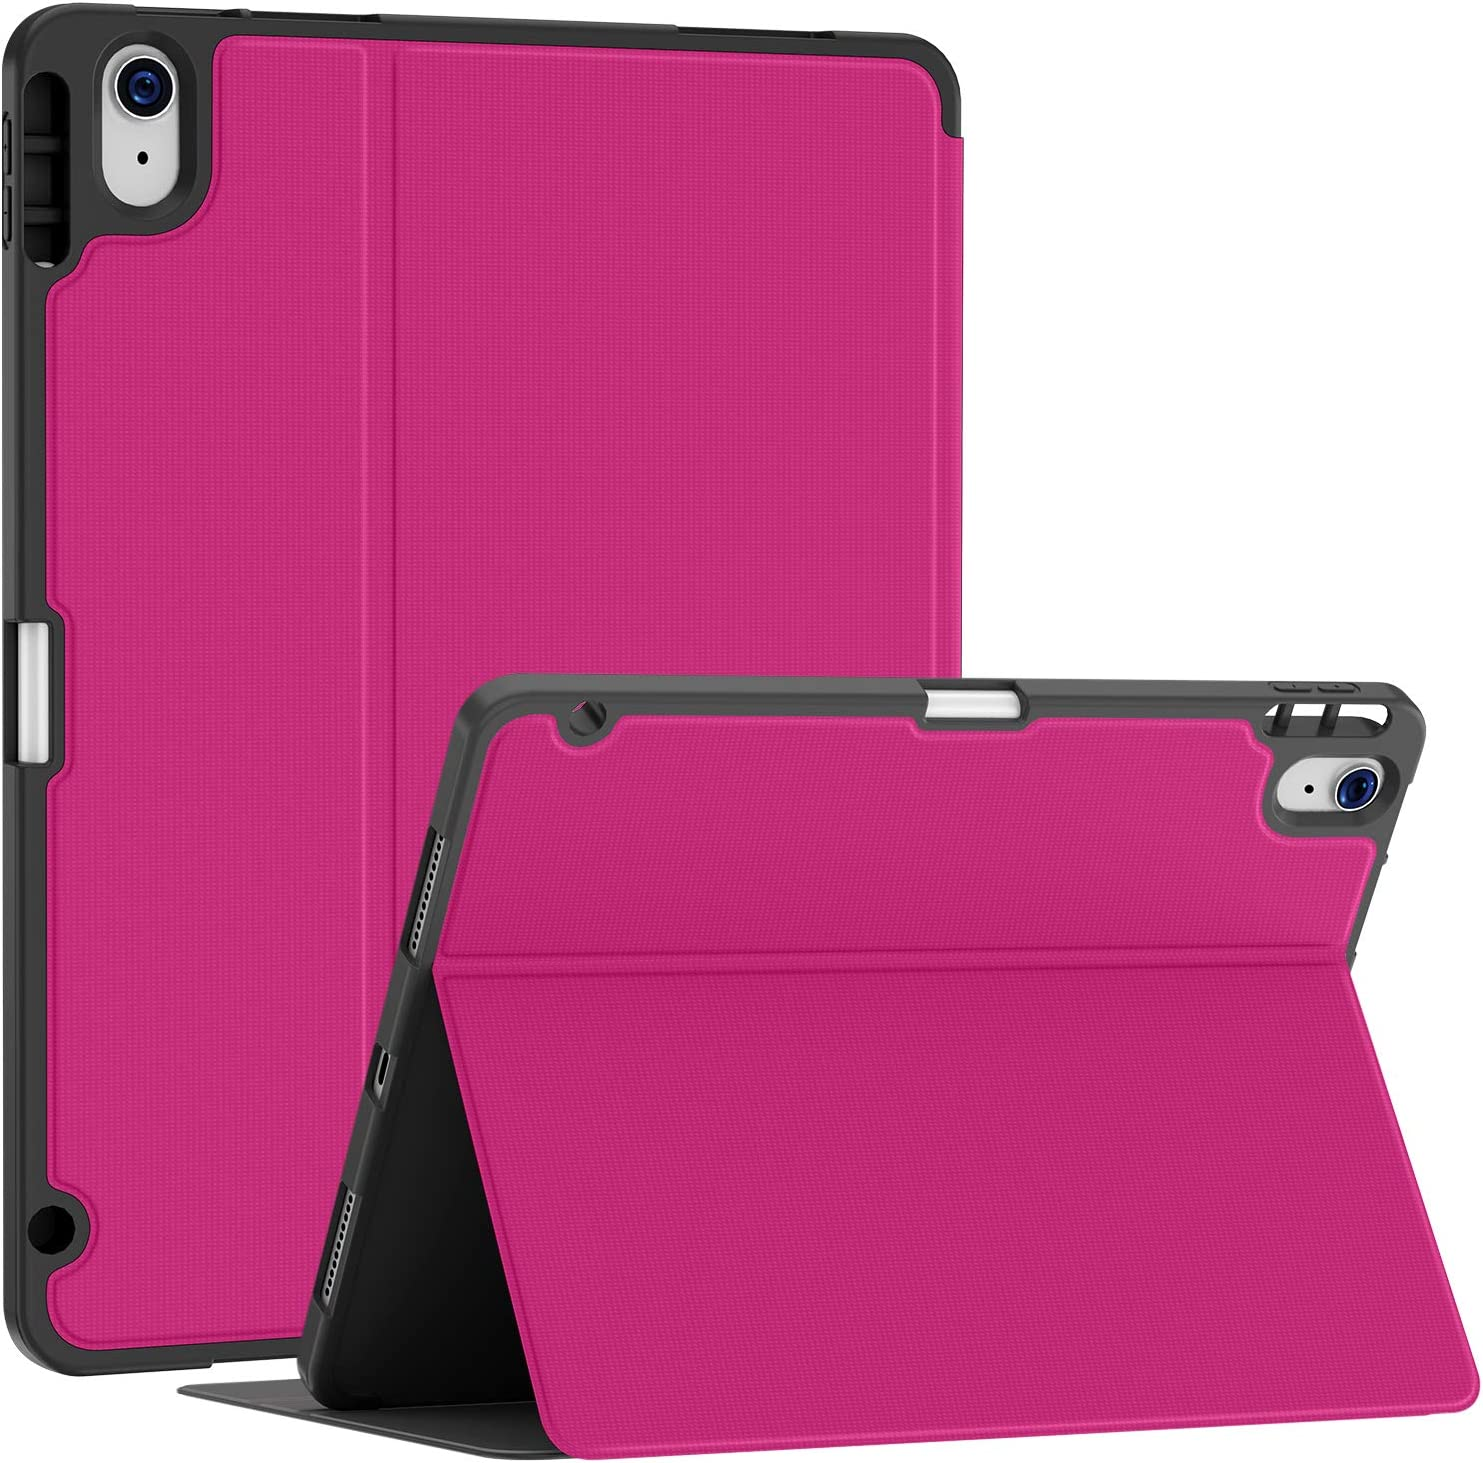 Soke Case for iPad Air 4th Generation 2020, iPad 10.9'' Case with Pencil Holder, Premium Shockproof Stand Folio Case[Support Touch ID + The 2nd Pencil Charging], Smart Soft TPU Back Cover, Hot Pink